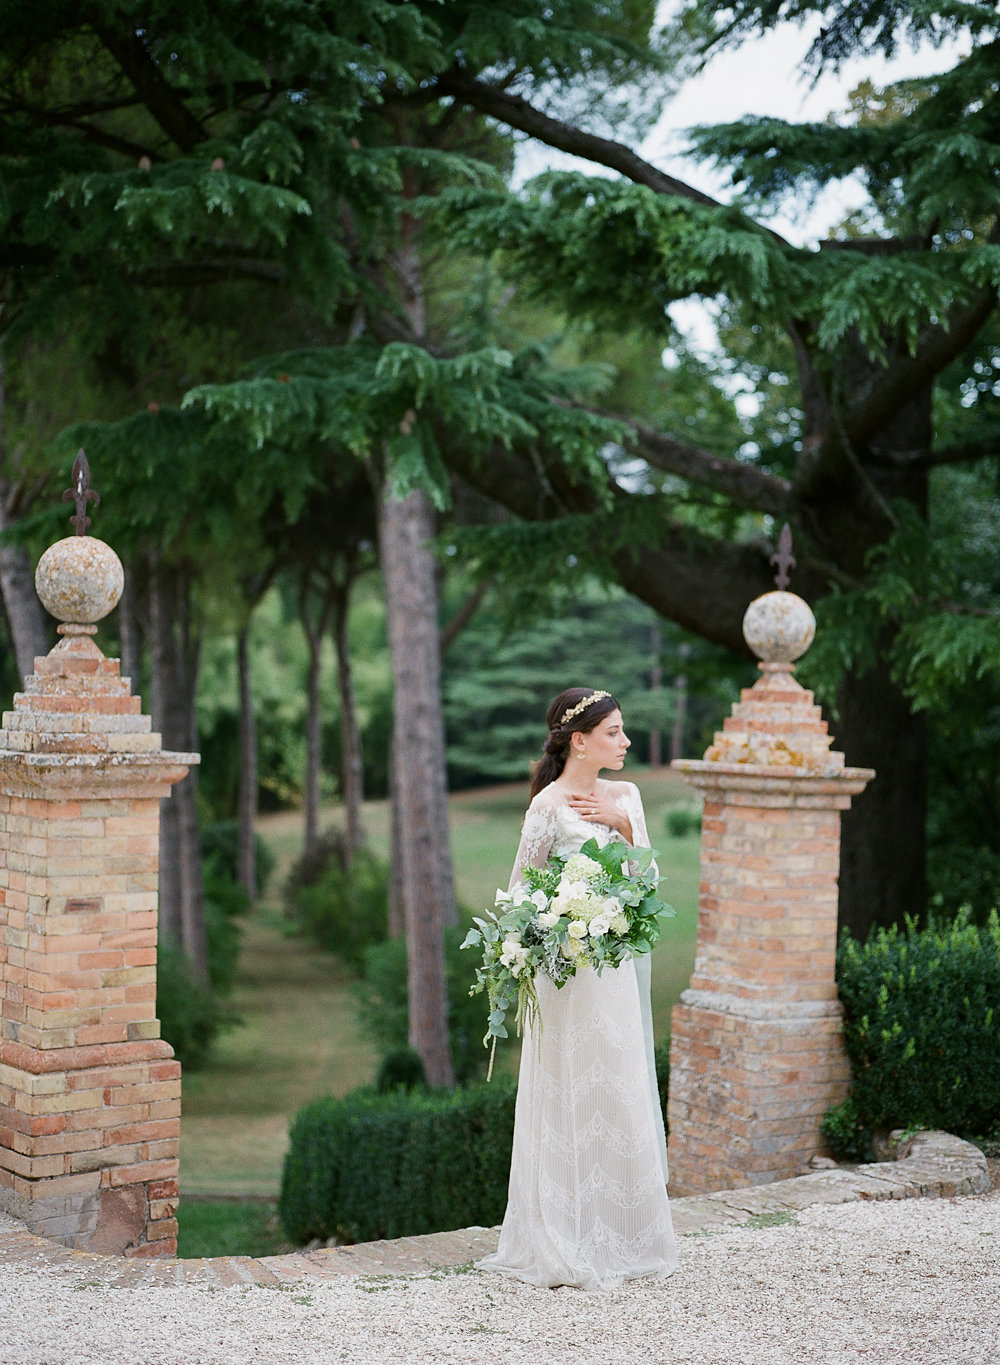 Italian Estate Styled Shoot | Credit: Magnolia & Magpie Photography